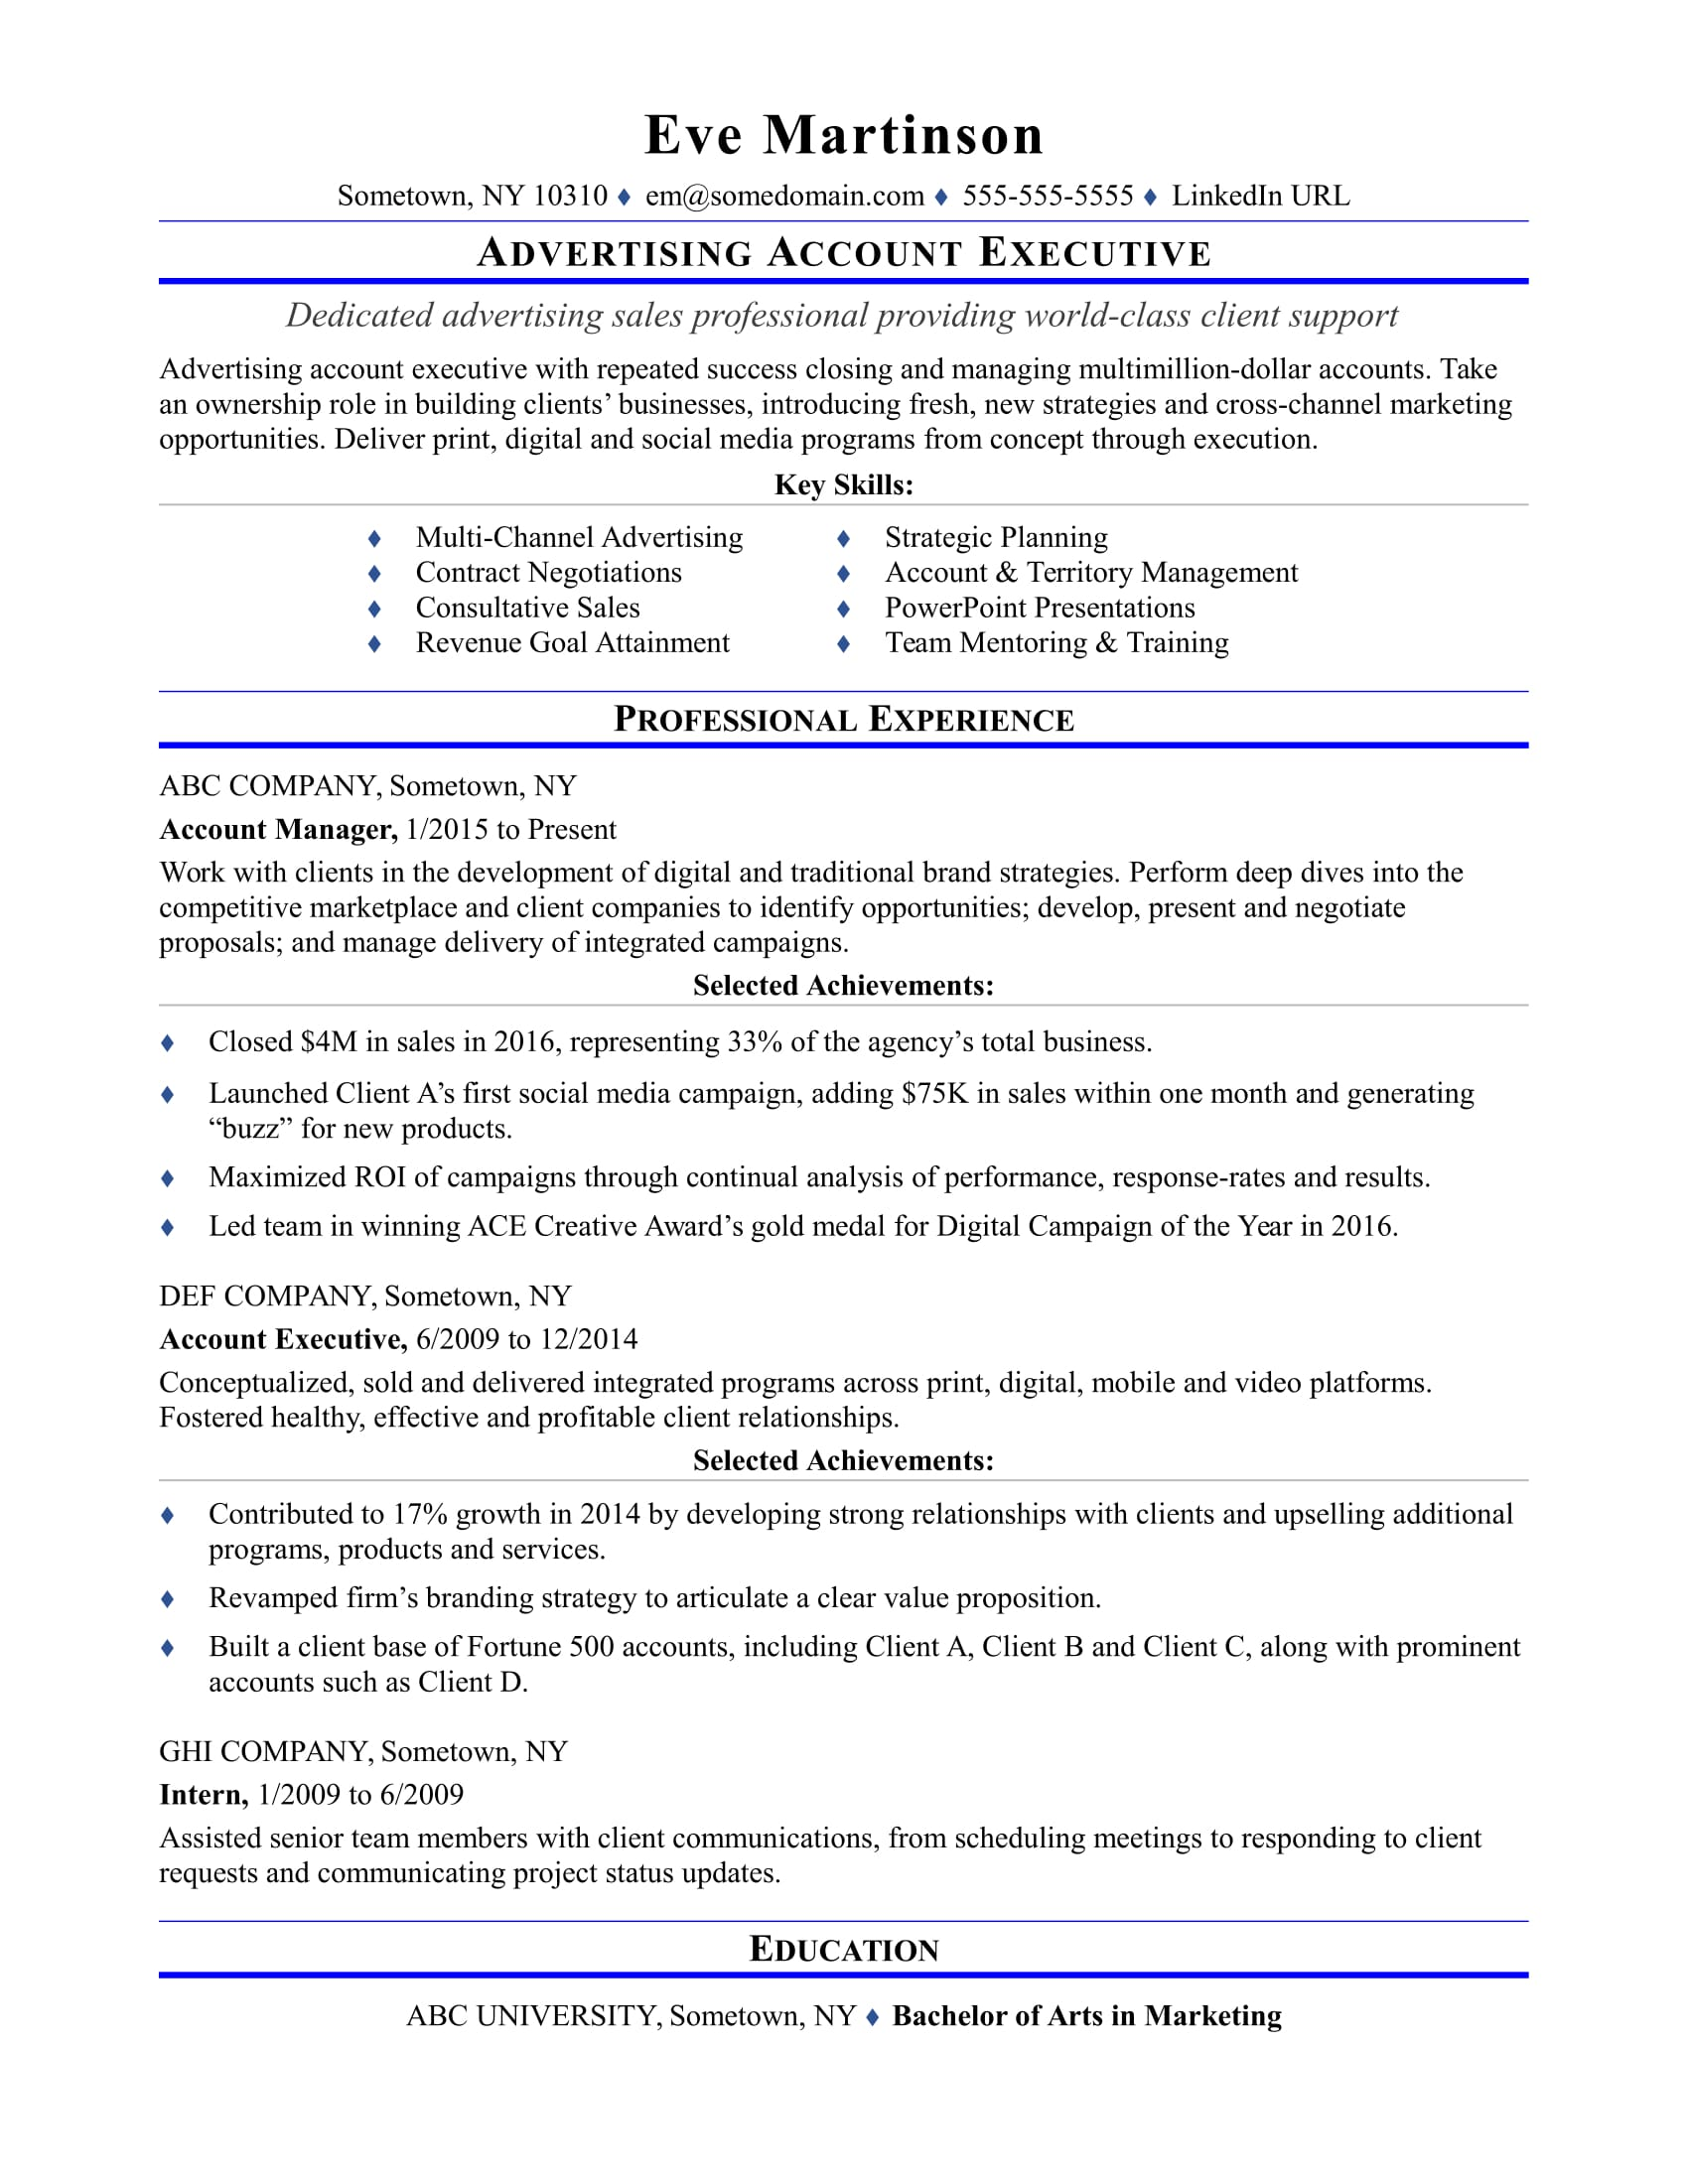 sample resume for an advertising account executive monster technical summary examples Resume Technical Executive Resume